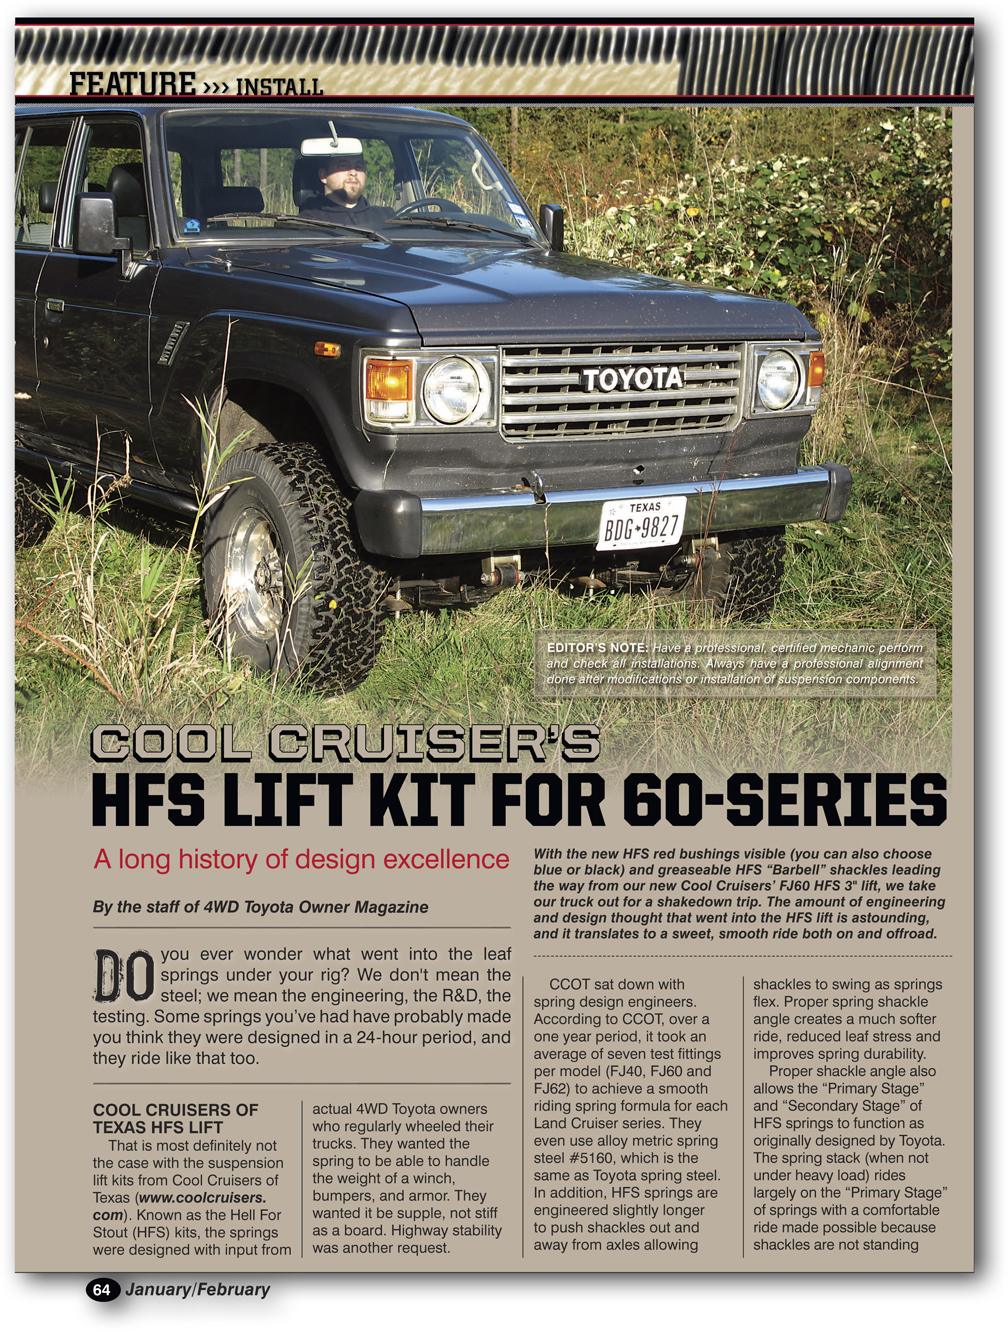 Hfs 25 Lift On 33 Tires Toyota Land Cruiser Kit 4wd Owner Magazine Fj62 Issue 2015 Page 1 Of 3